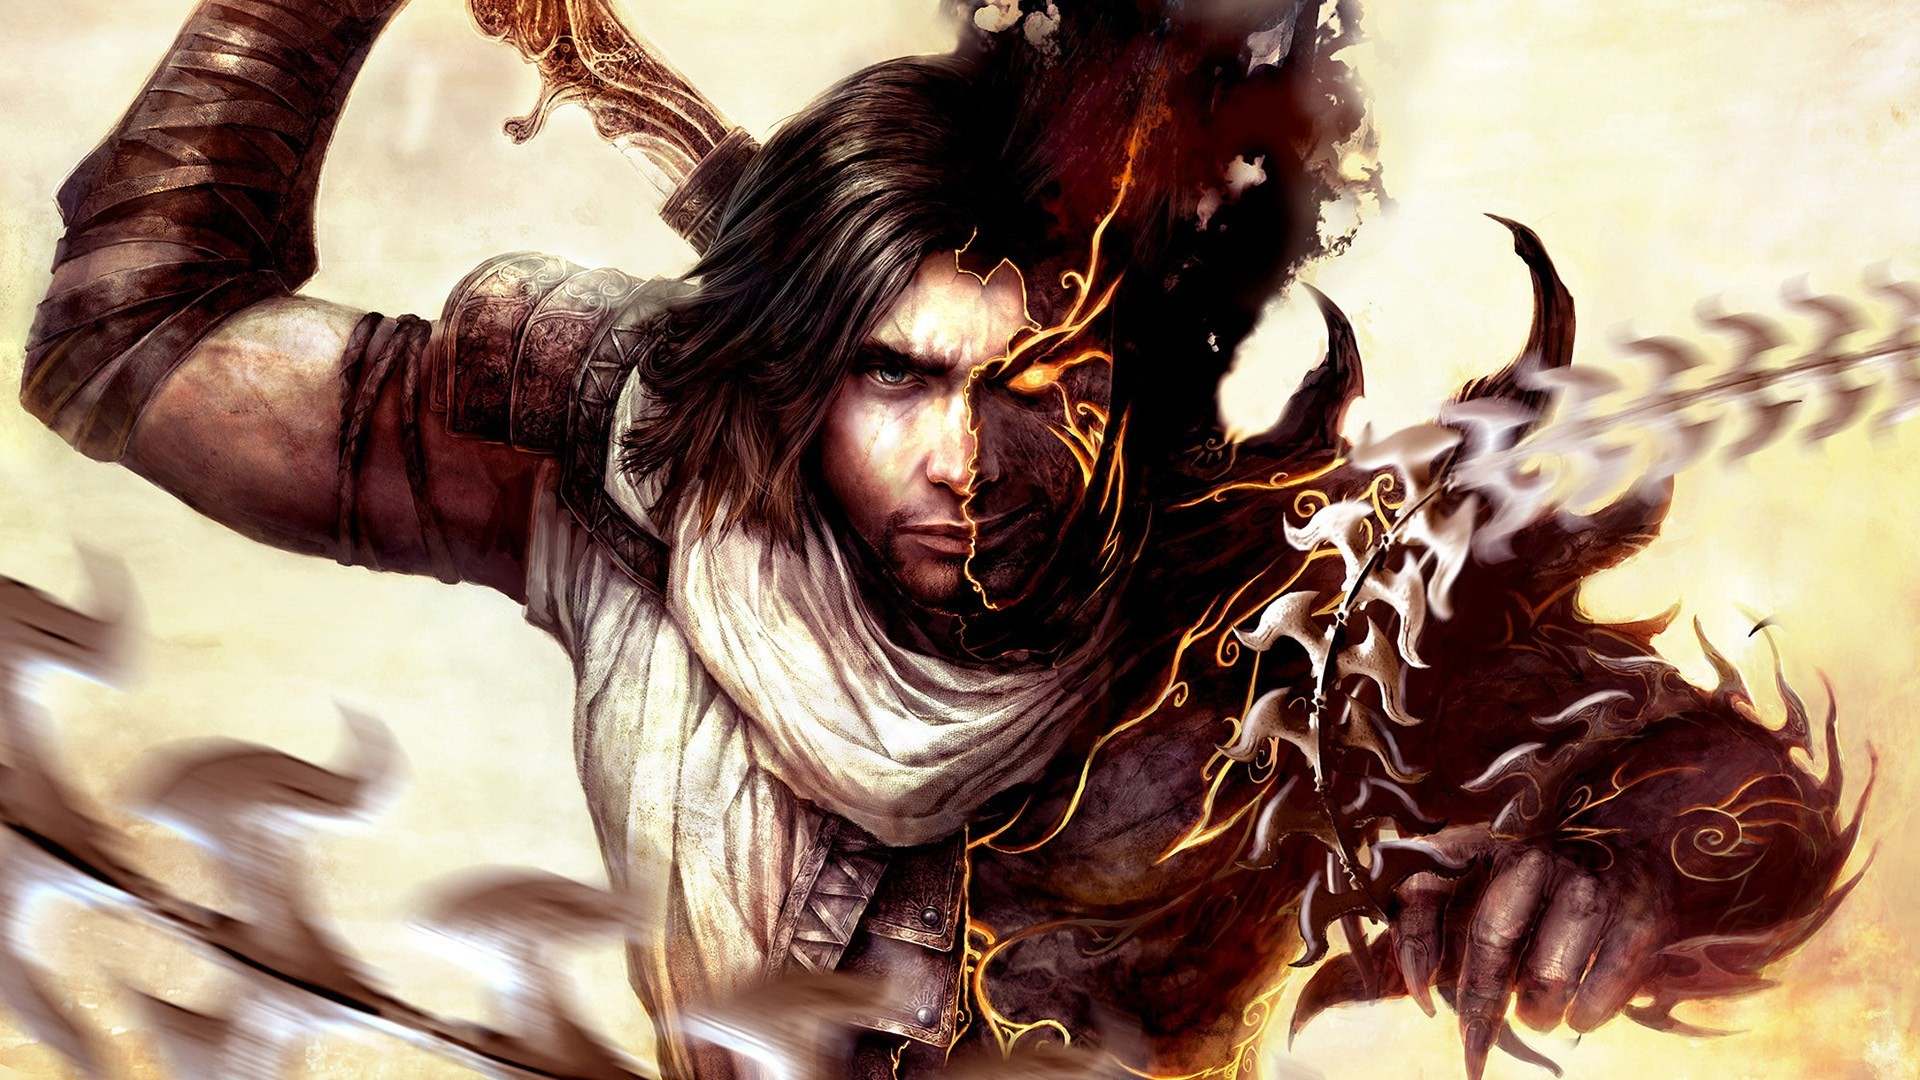 Prince of Persia The Sands of Time HD Wallpaper Background Image